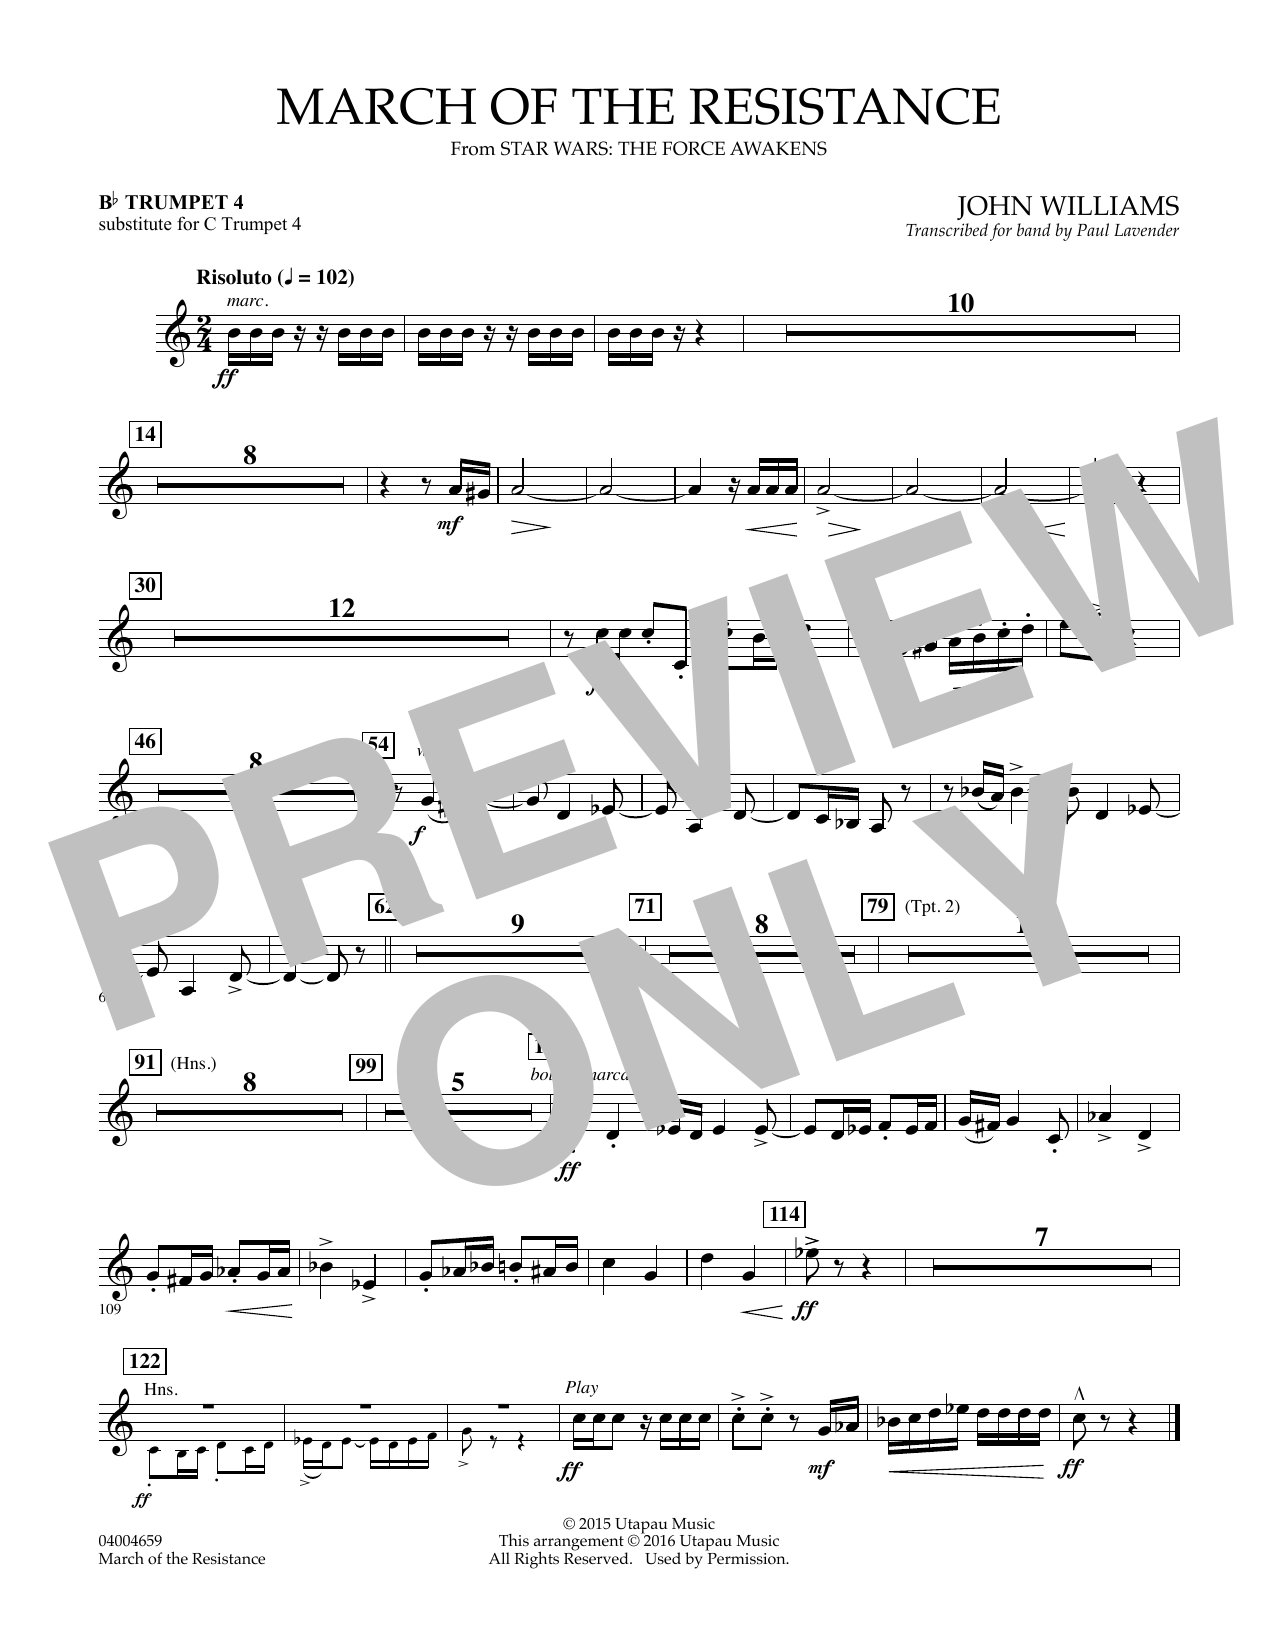 March of the Resistance - Bb Trumpet 1 (sub. C Tpt. 1 - - Bb Trumpet 4 (sub. C Tpt. 4) Sheet Music